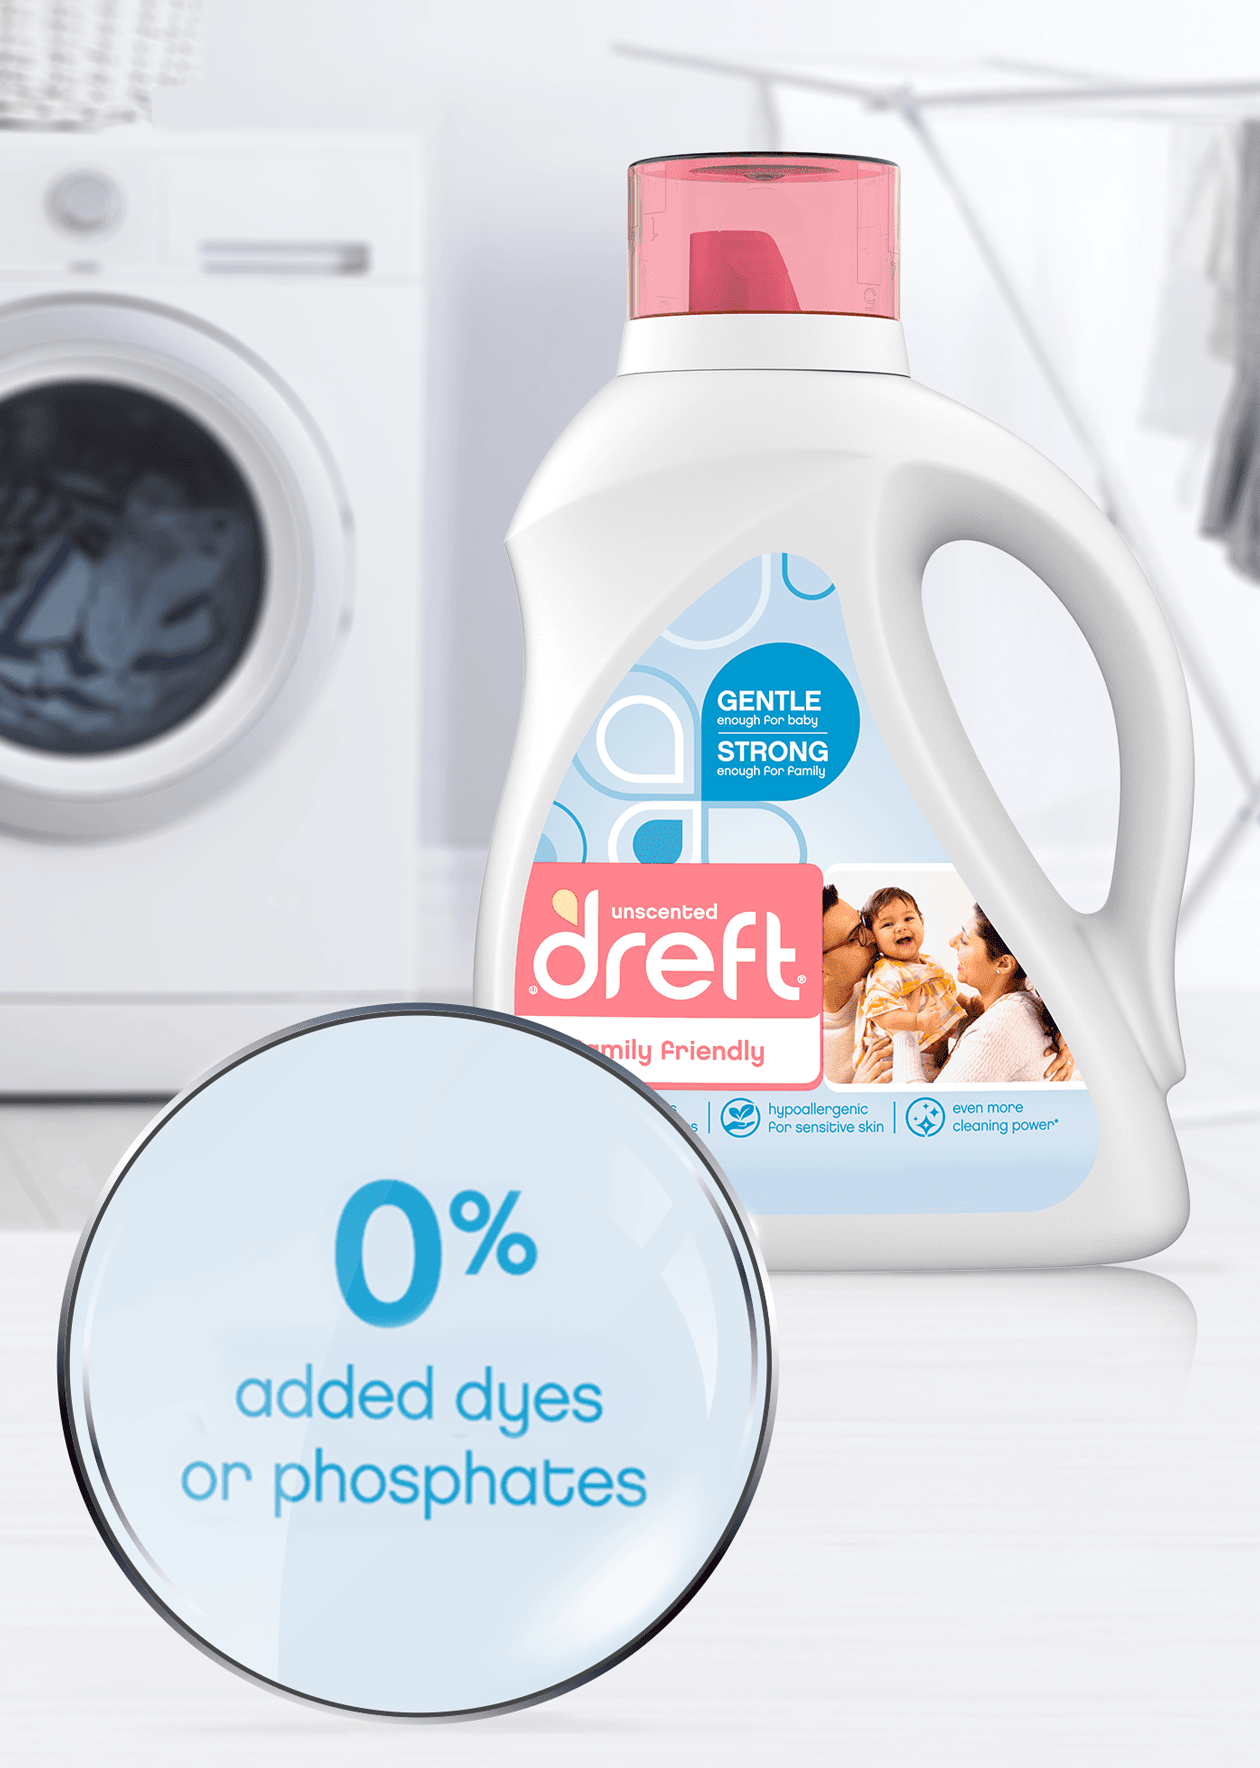 Dreft Family Friendly Laundry Detergent has 0% added dyes or phosphates